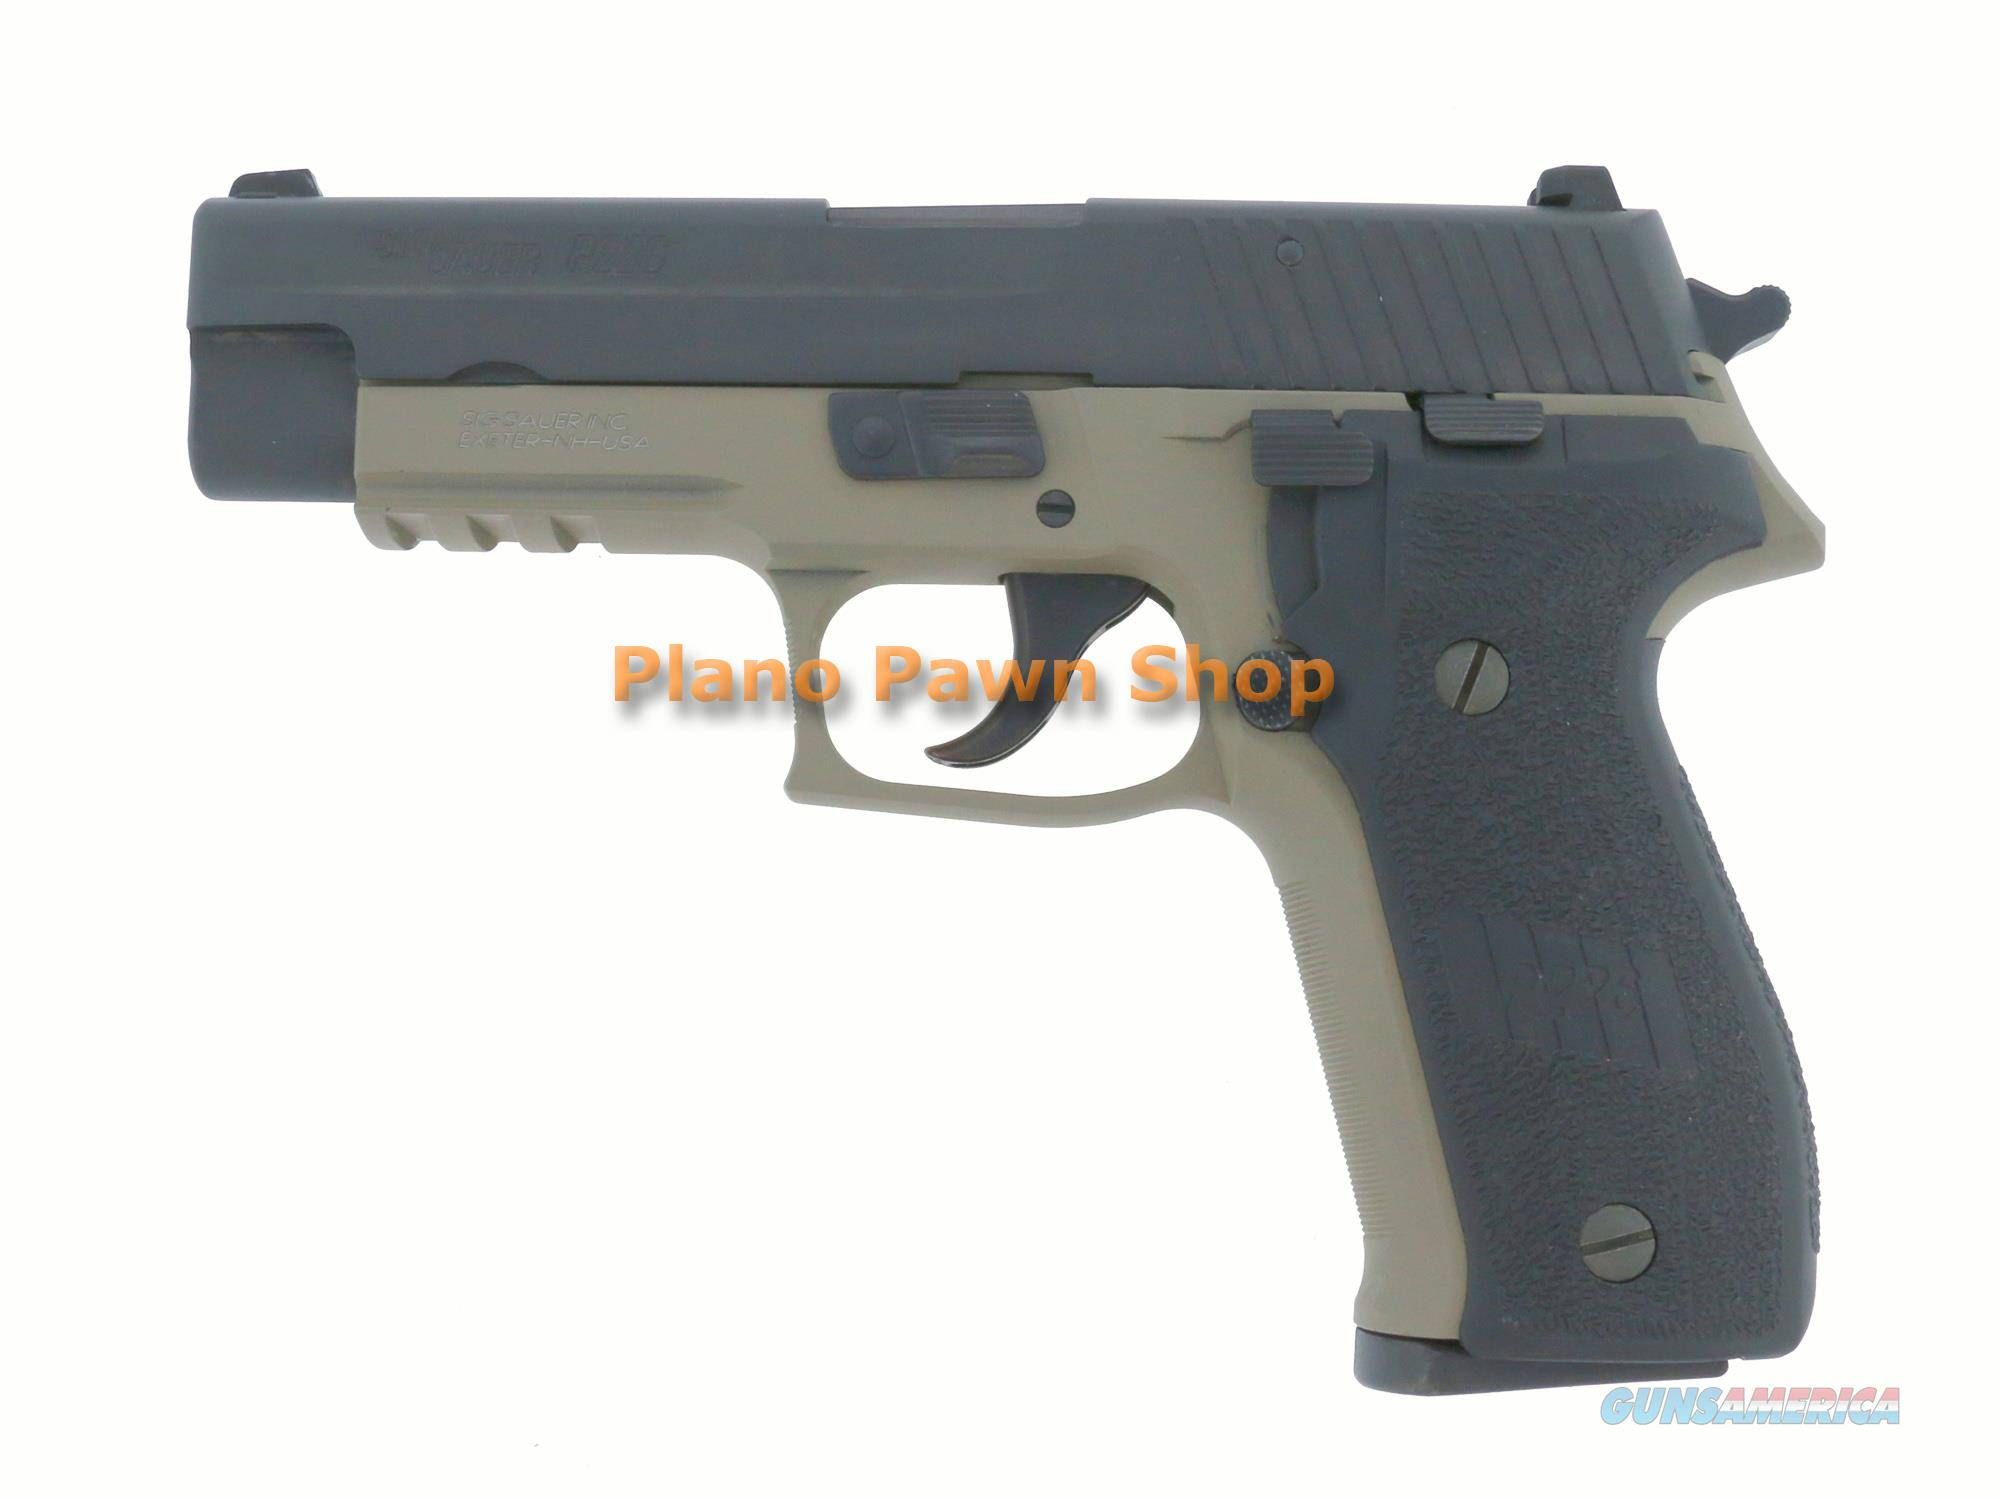 SIG Sauer Model P226 Dark Earth 9mm with Night Sights & 1 Magazine  Guns > Pistols > Sig - Sauer/Sigarms Pistols > P226